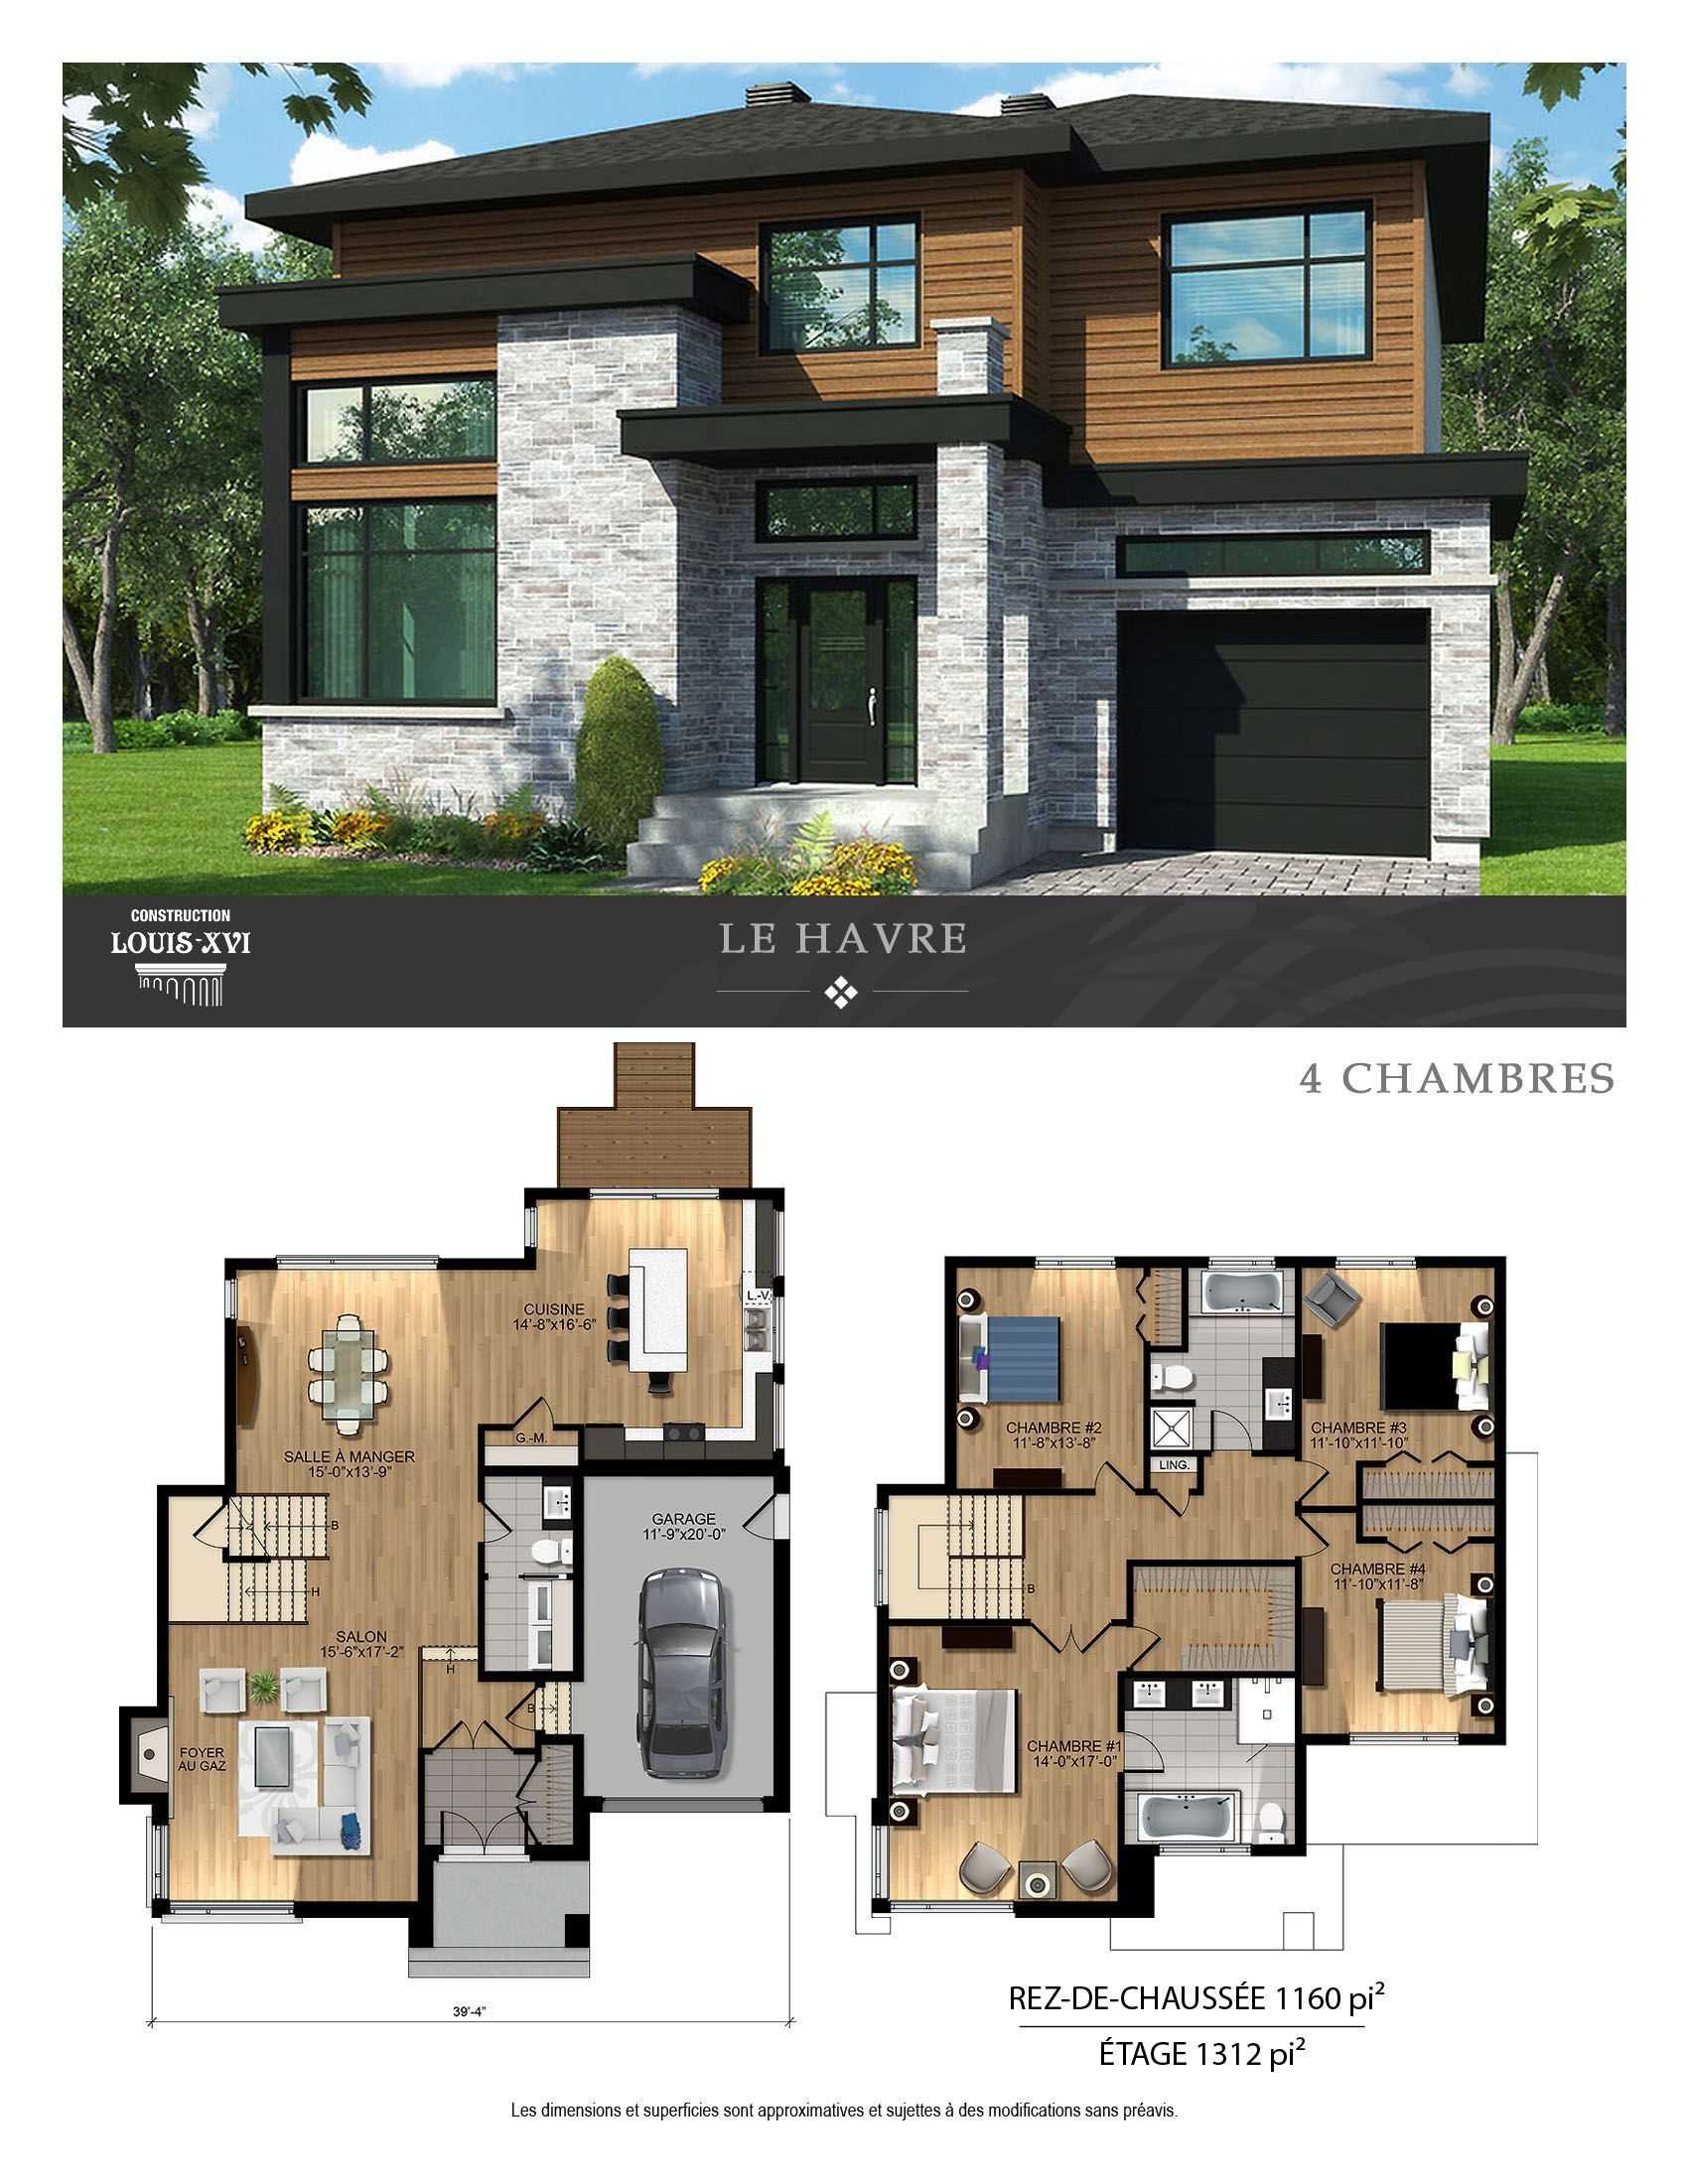 Contemporary House Plans For Sale 2020 Sims 4 Modern House Modern House Floor Plans Contemporary House Plans